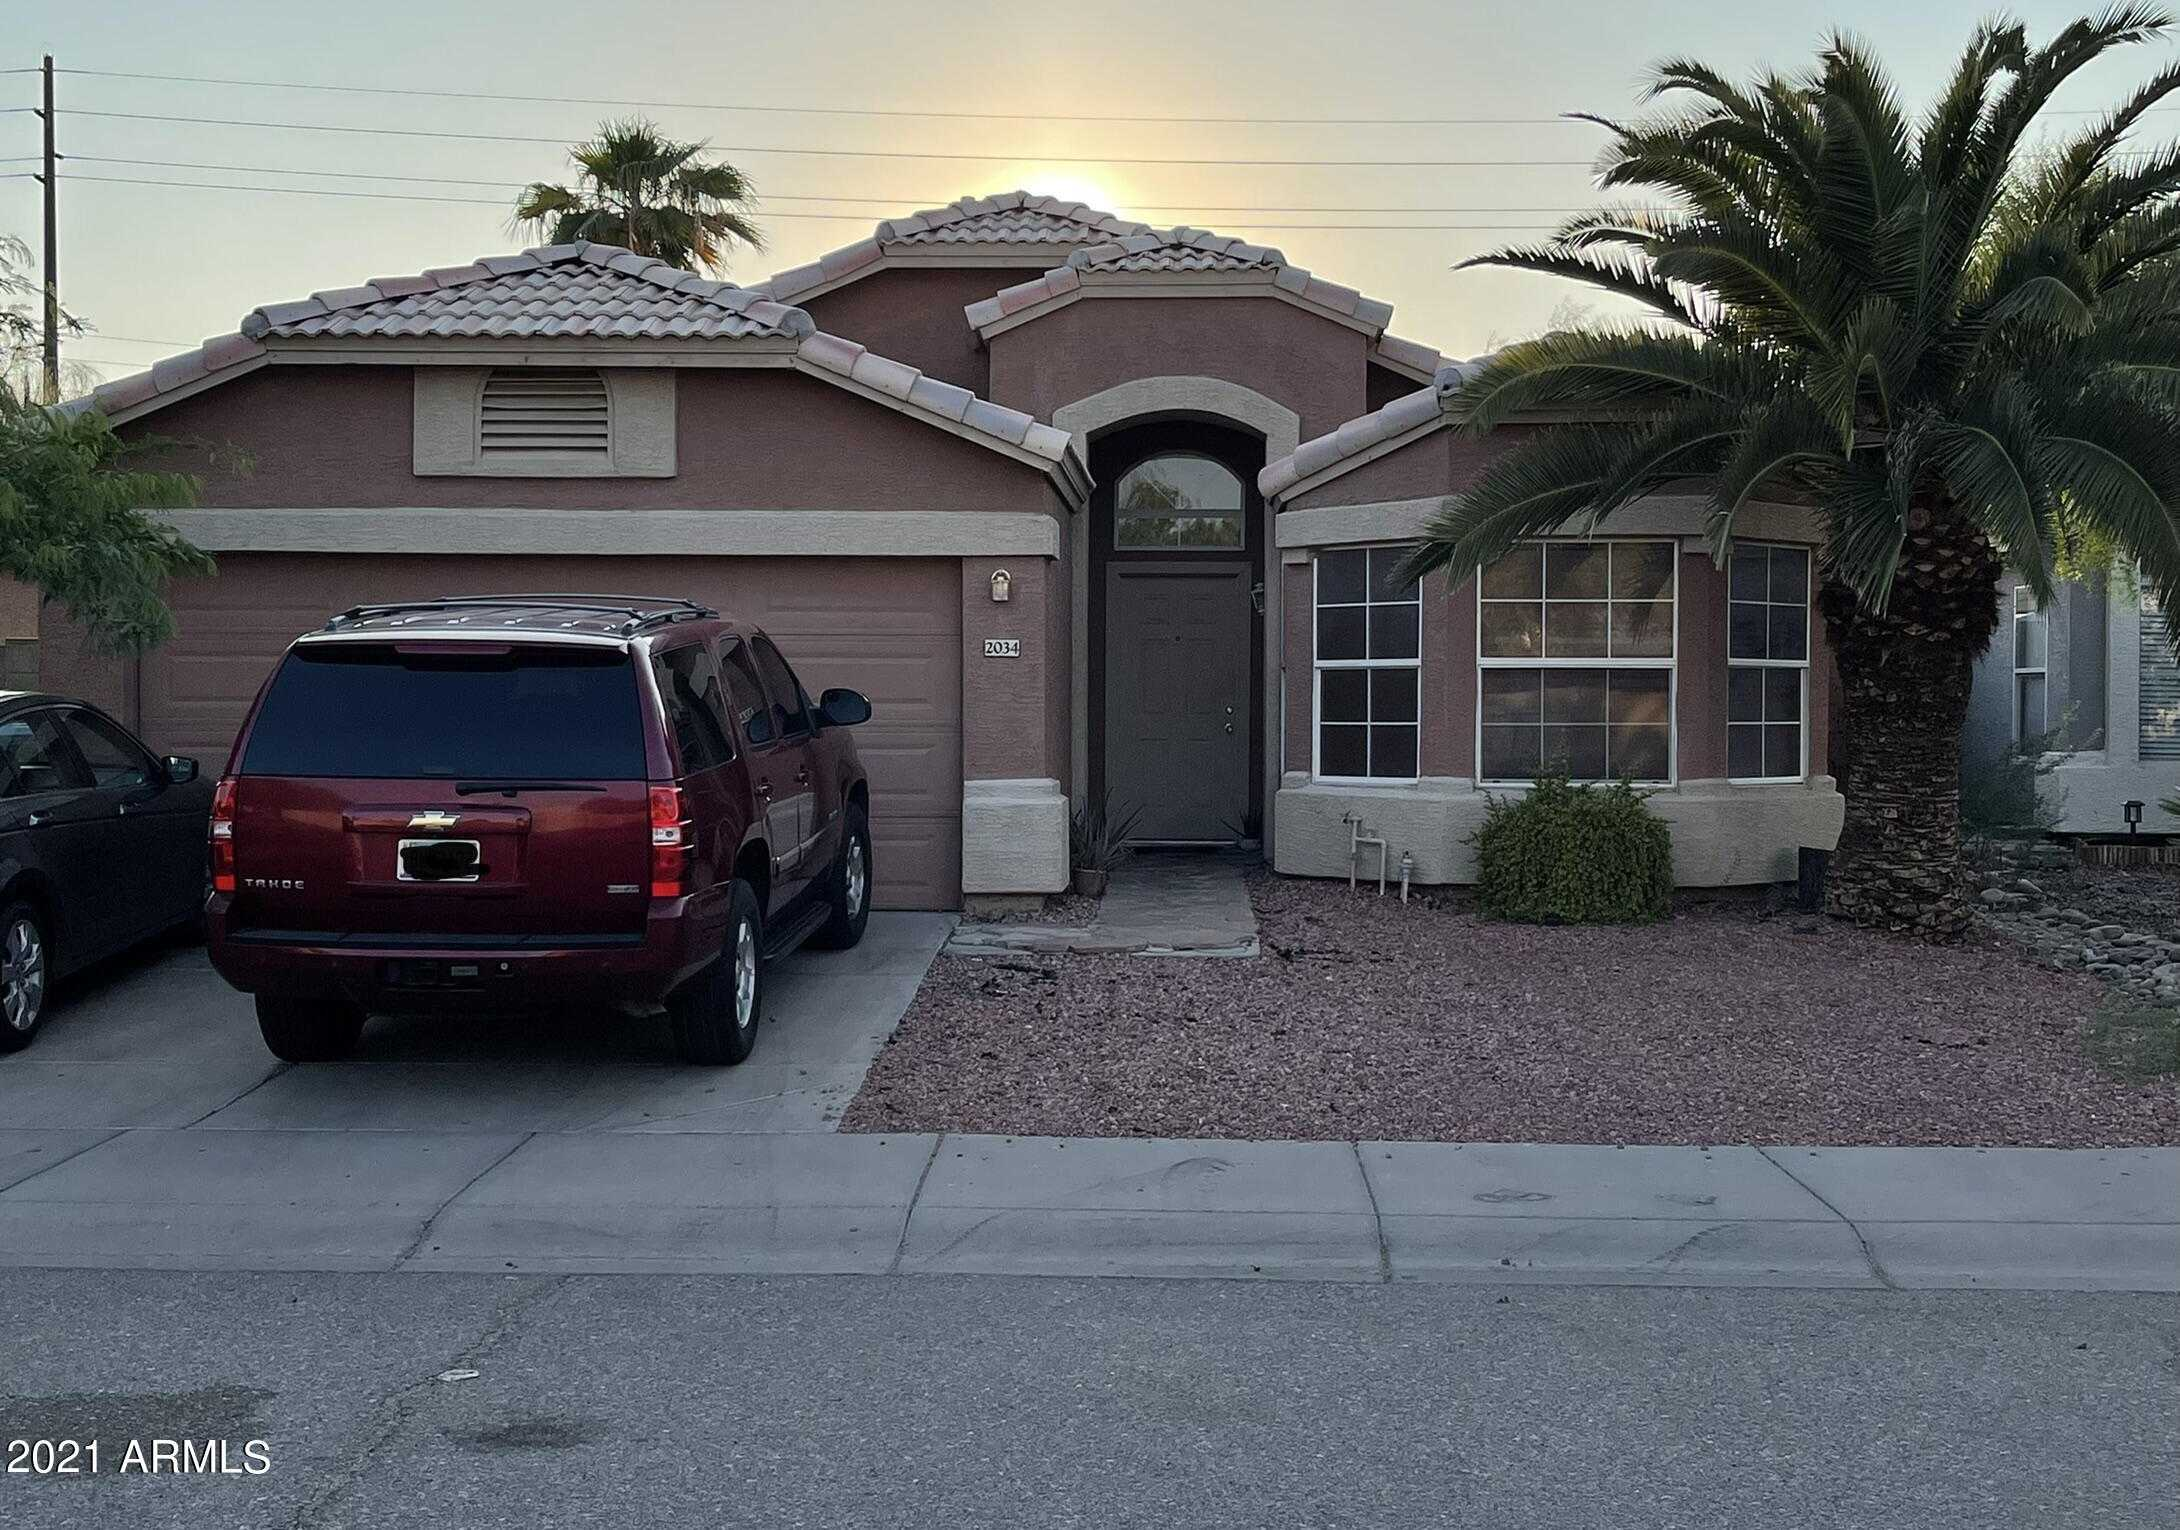 $320,000 - 3Br/2Ba - Home for Sale in Amber Palms Lot 1-136 287-375, Phoenix